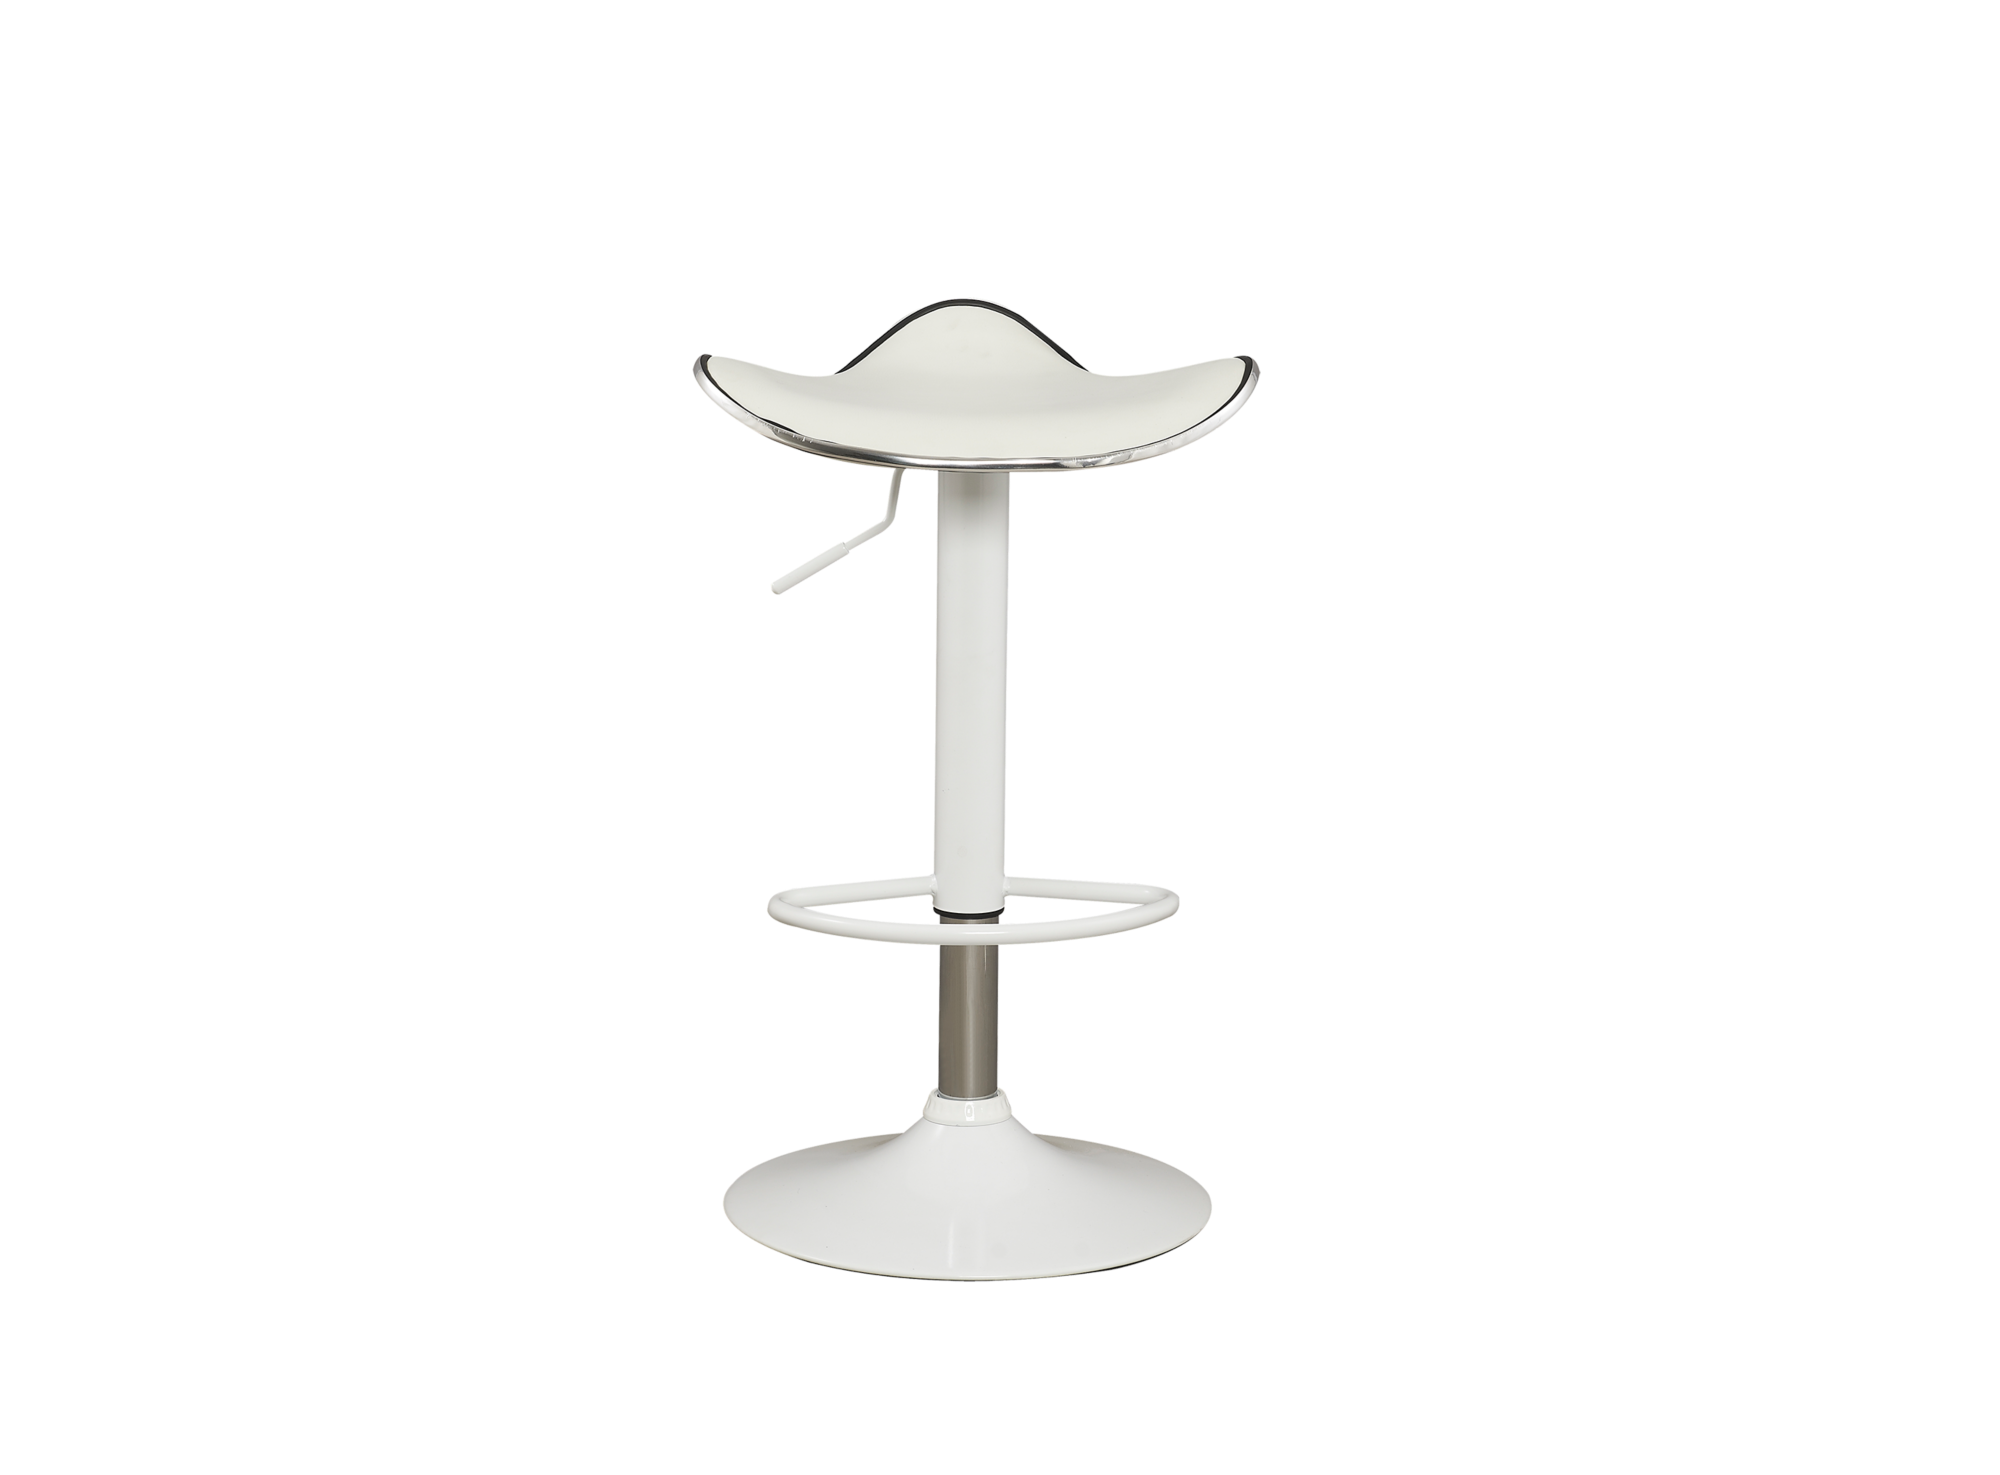 Tabouret bar fly photo tabouret de bar fly tabouret de bar pivotant fly meubles et atmosph re - Tabouret de bar plexiglas transparent ...